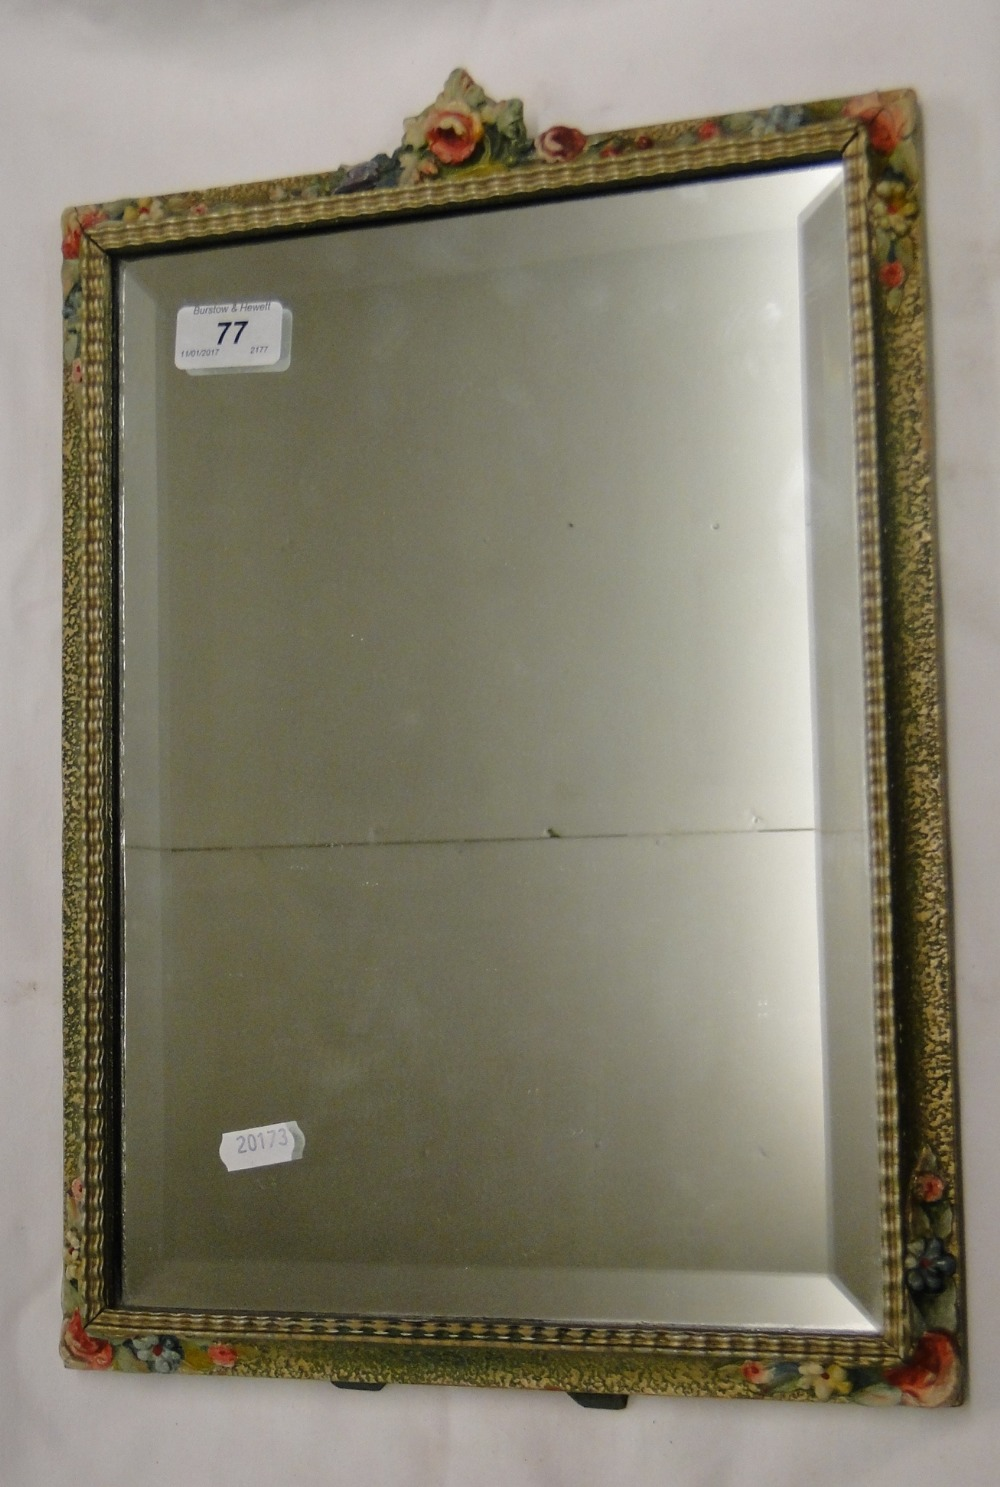 Lot 77 - A Rectangular Barbola strut mirror with floral design